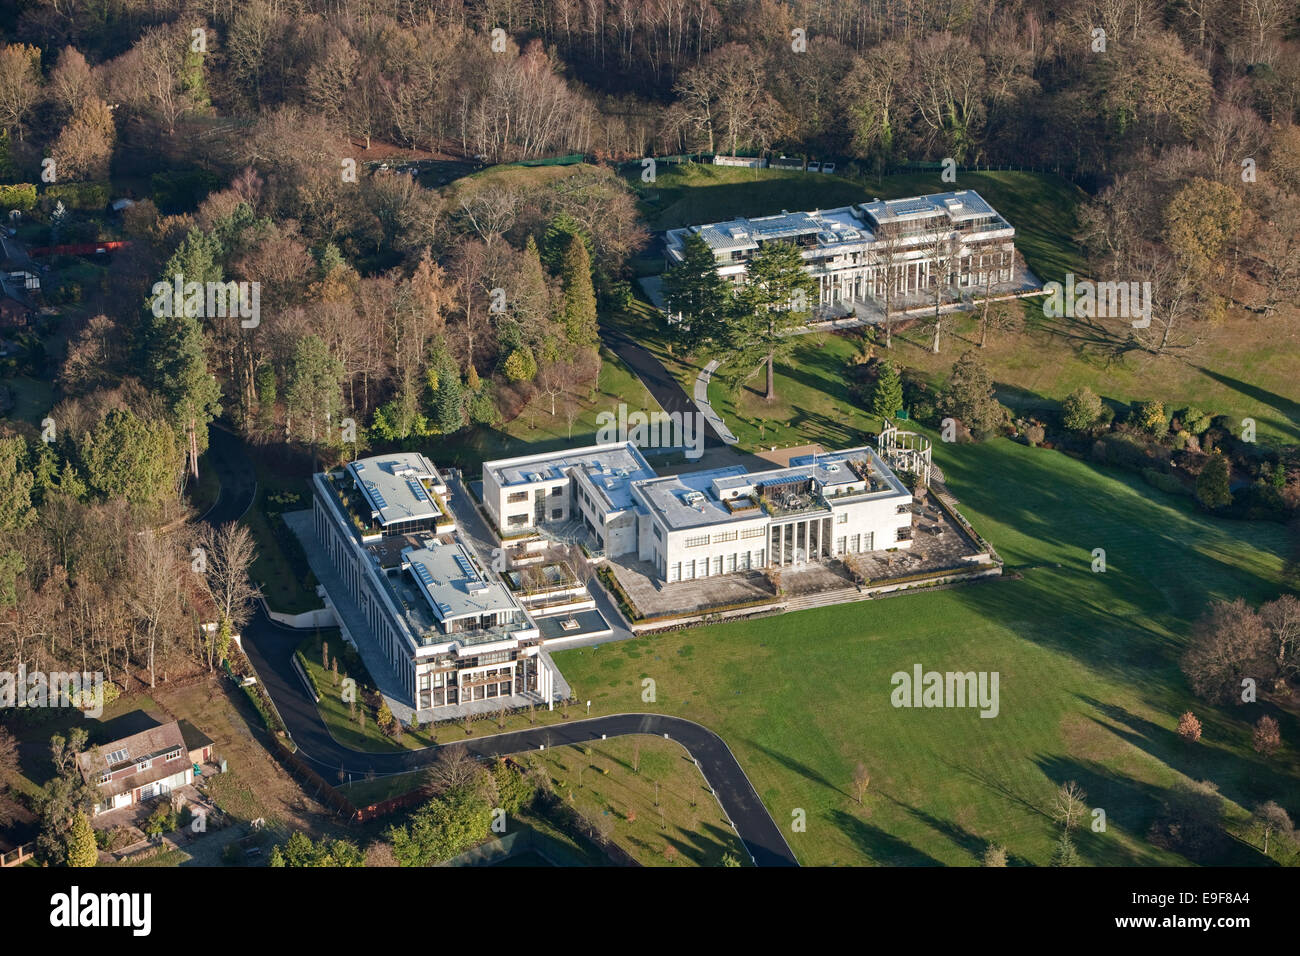 aerial view of the luxury Charters apartments, Sunninghill, Ascot, Berkshire, UK, home to Sir Cliff Richard amongst - Stock Image